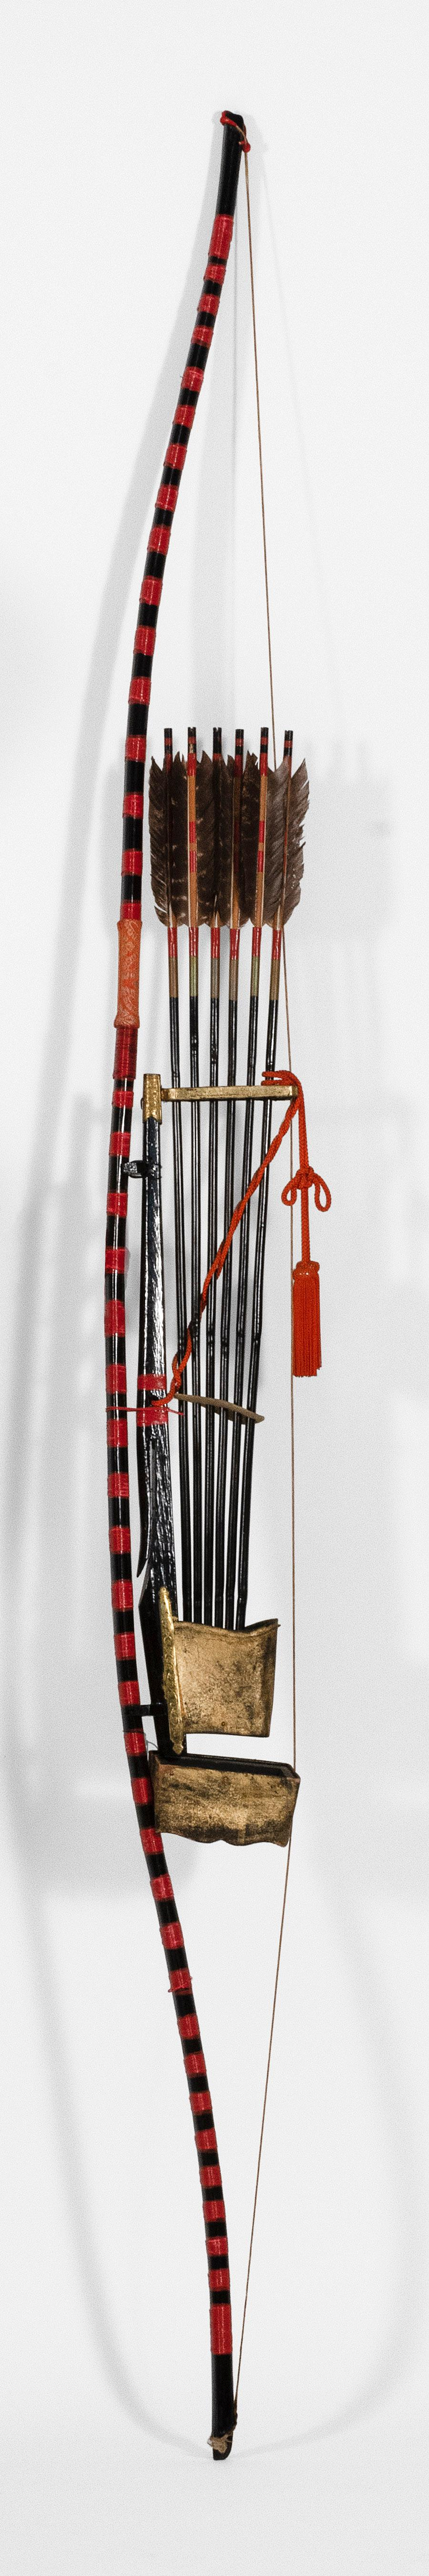 "JAPANESE DECORATIVE BOW, QUIVER AND SIX ARROWS Red and black lacquer bow. Quiver with gilt mounts. Bow length 82""."